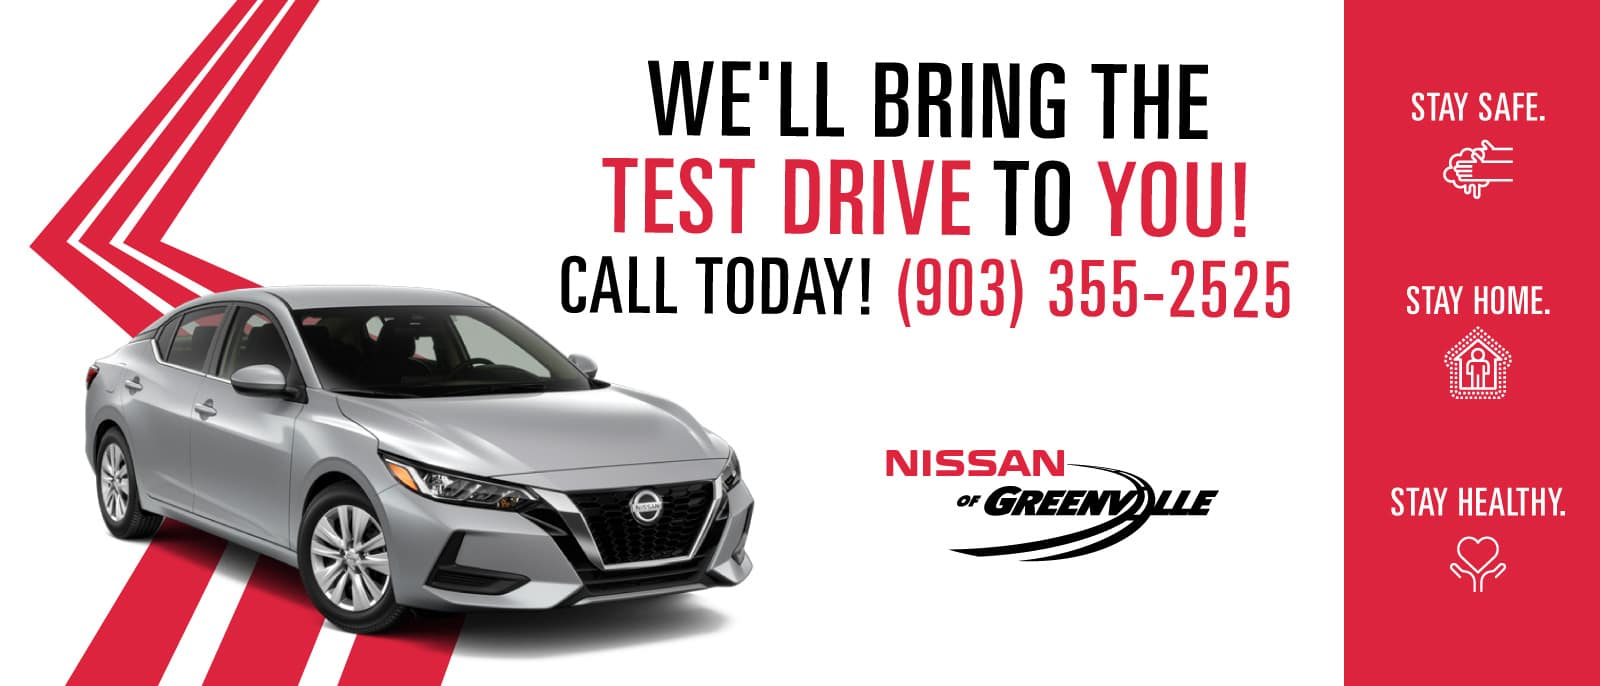 We'll Bring the Test Drive to You